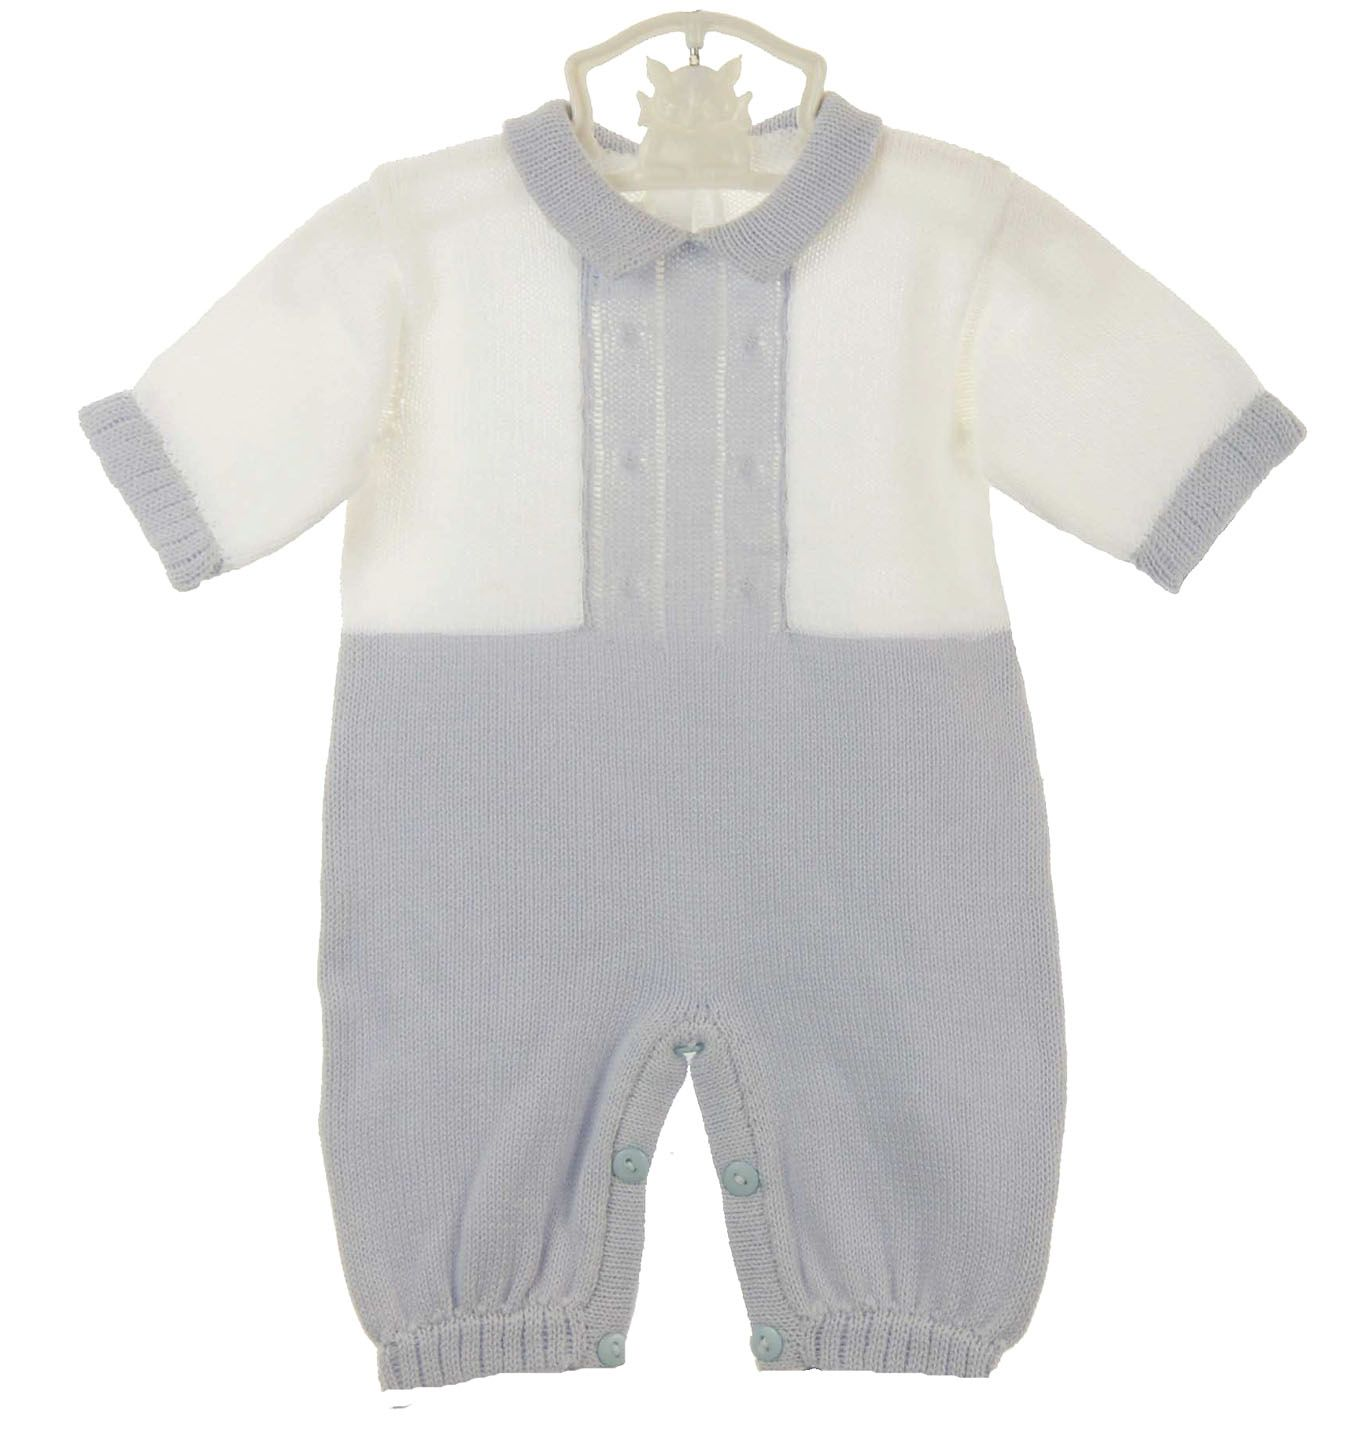 2195719cd NEW Baby s Trousseau Blue and White Cotton Knit Romper and Hat Set ...